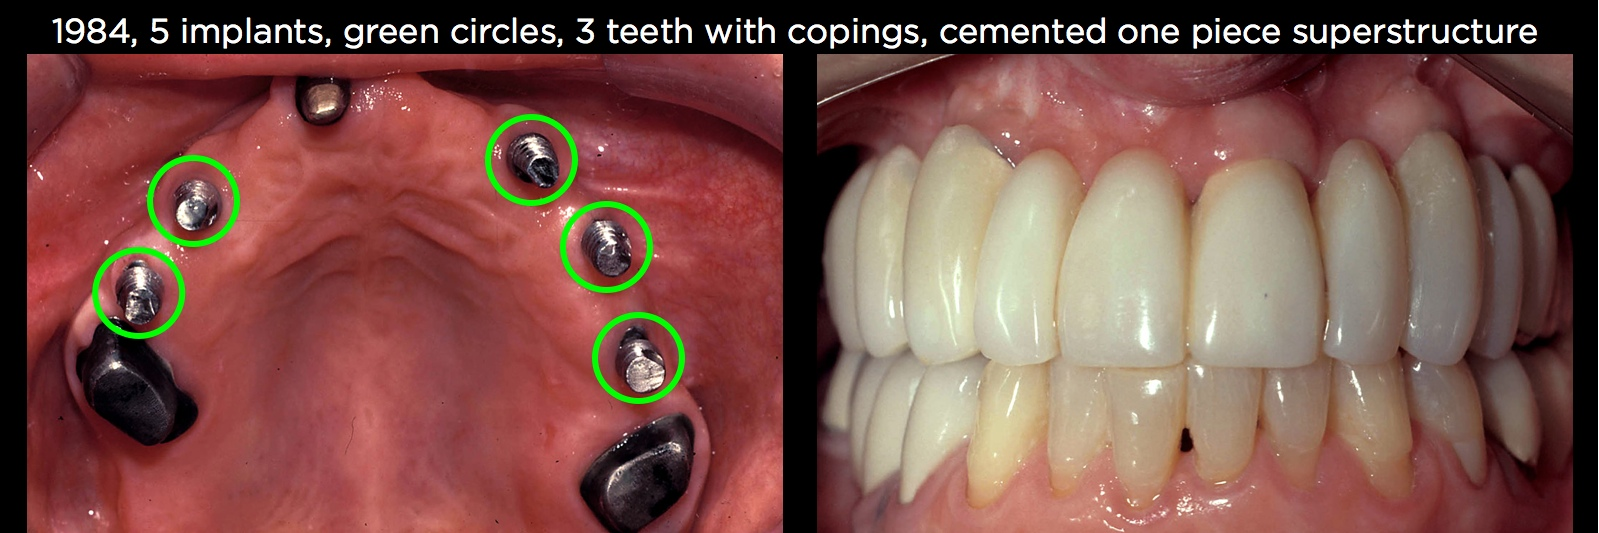 Connecting Teeth and Implants: Yes, No, Maybe? - Spear Education